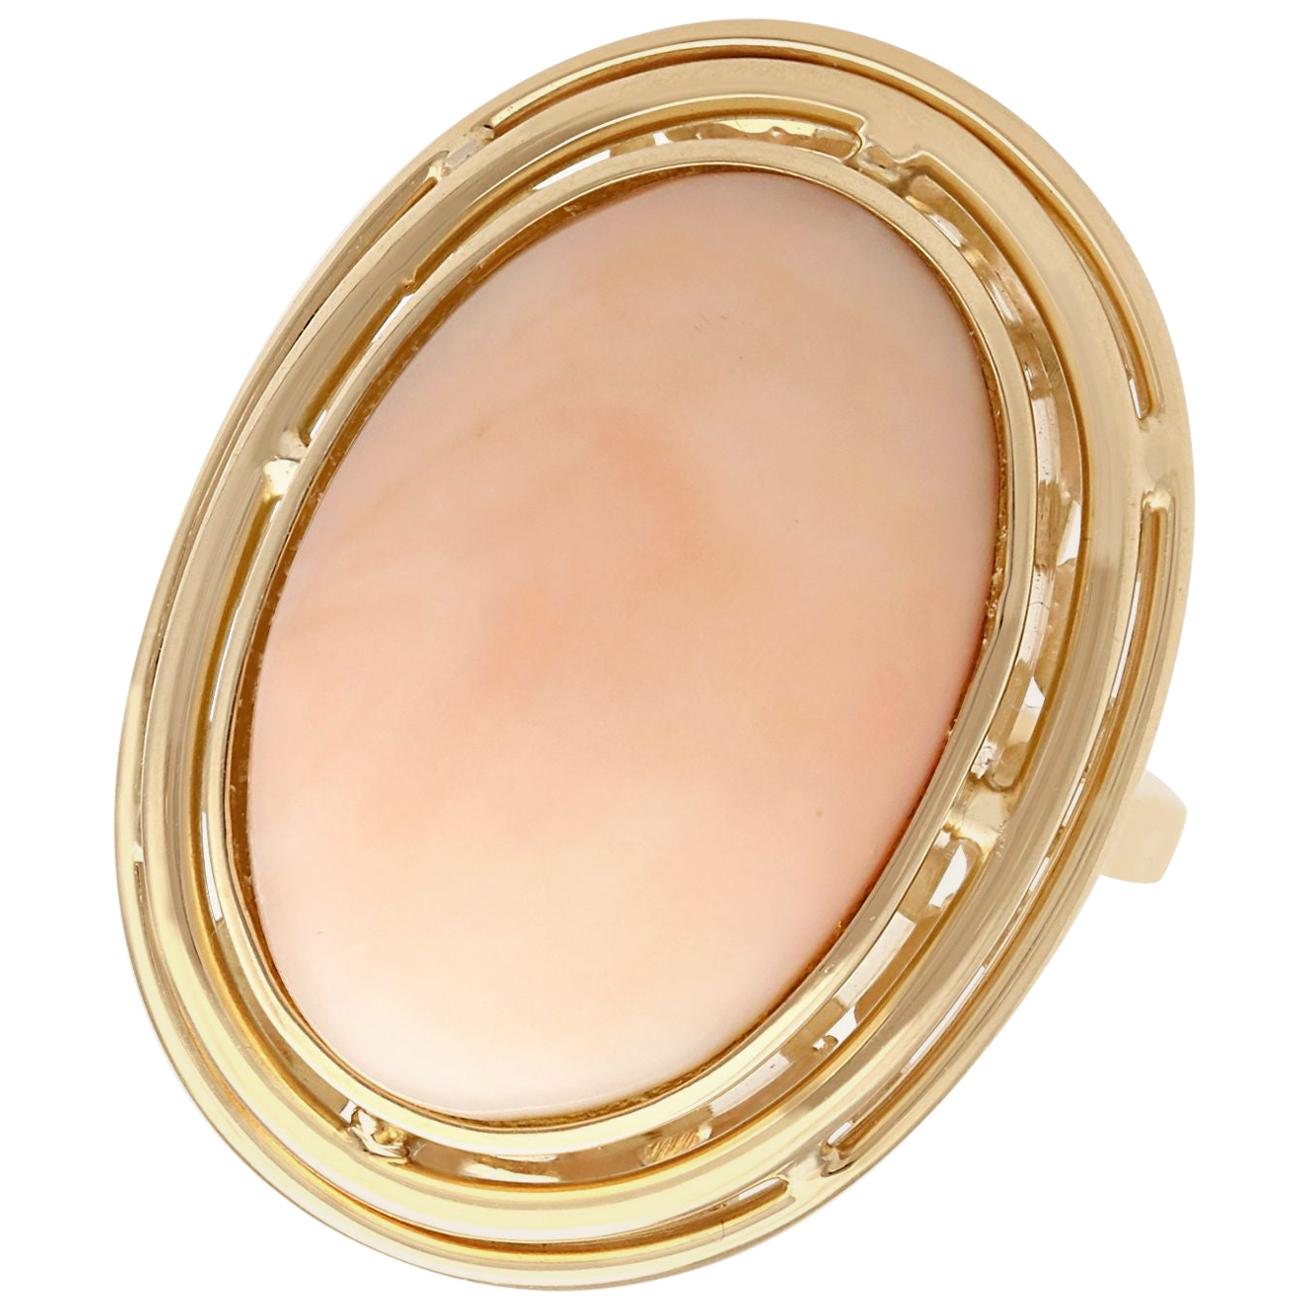 1960s 13.98 Carat Cabochon Cut Coral and Yellow Gold Cocktail Ring